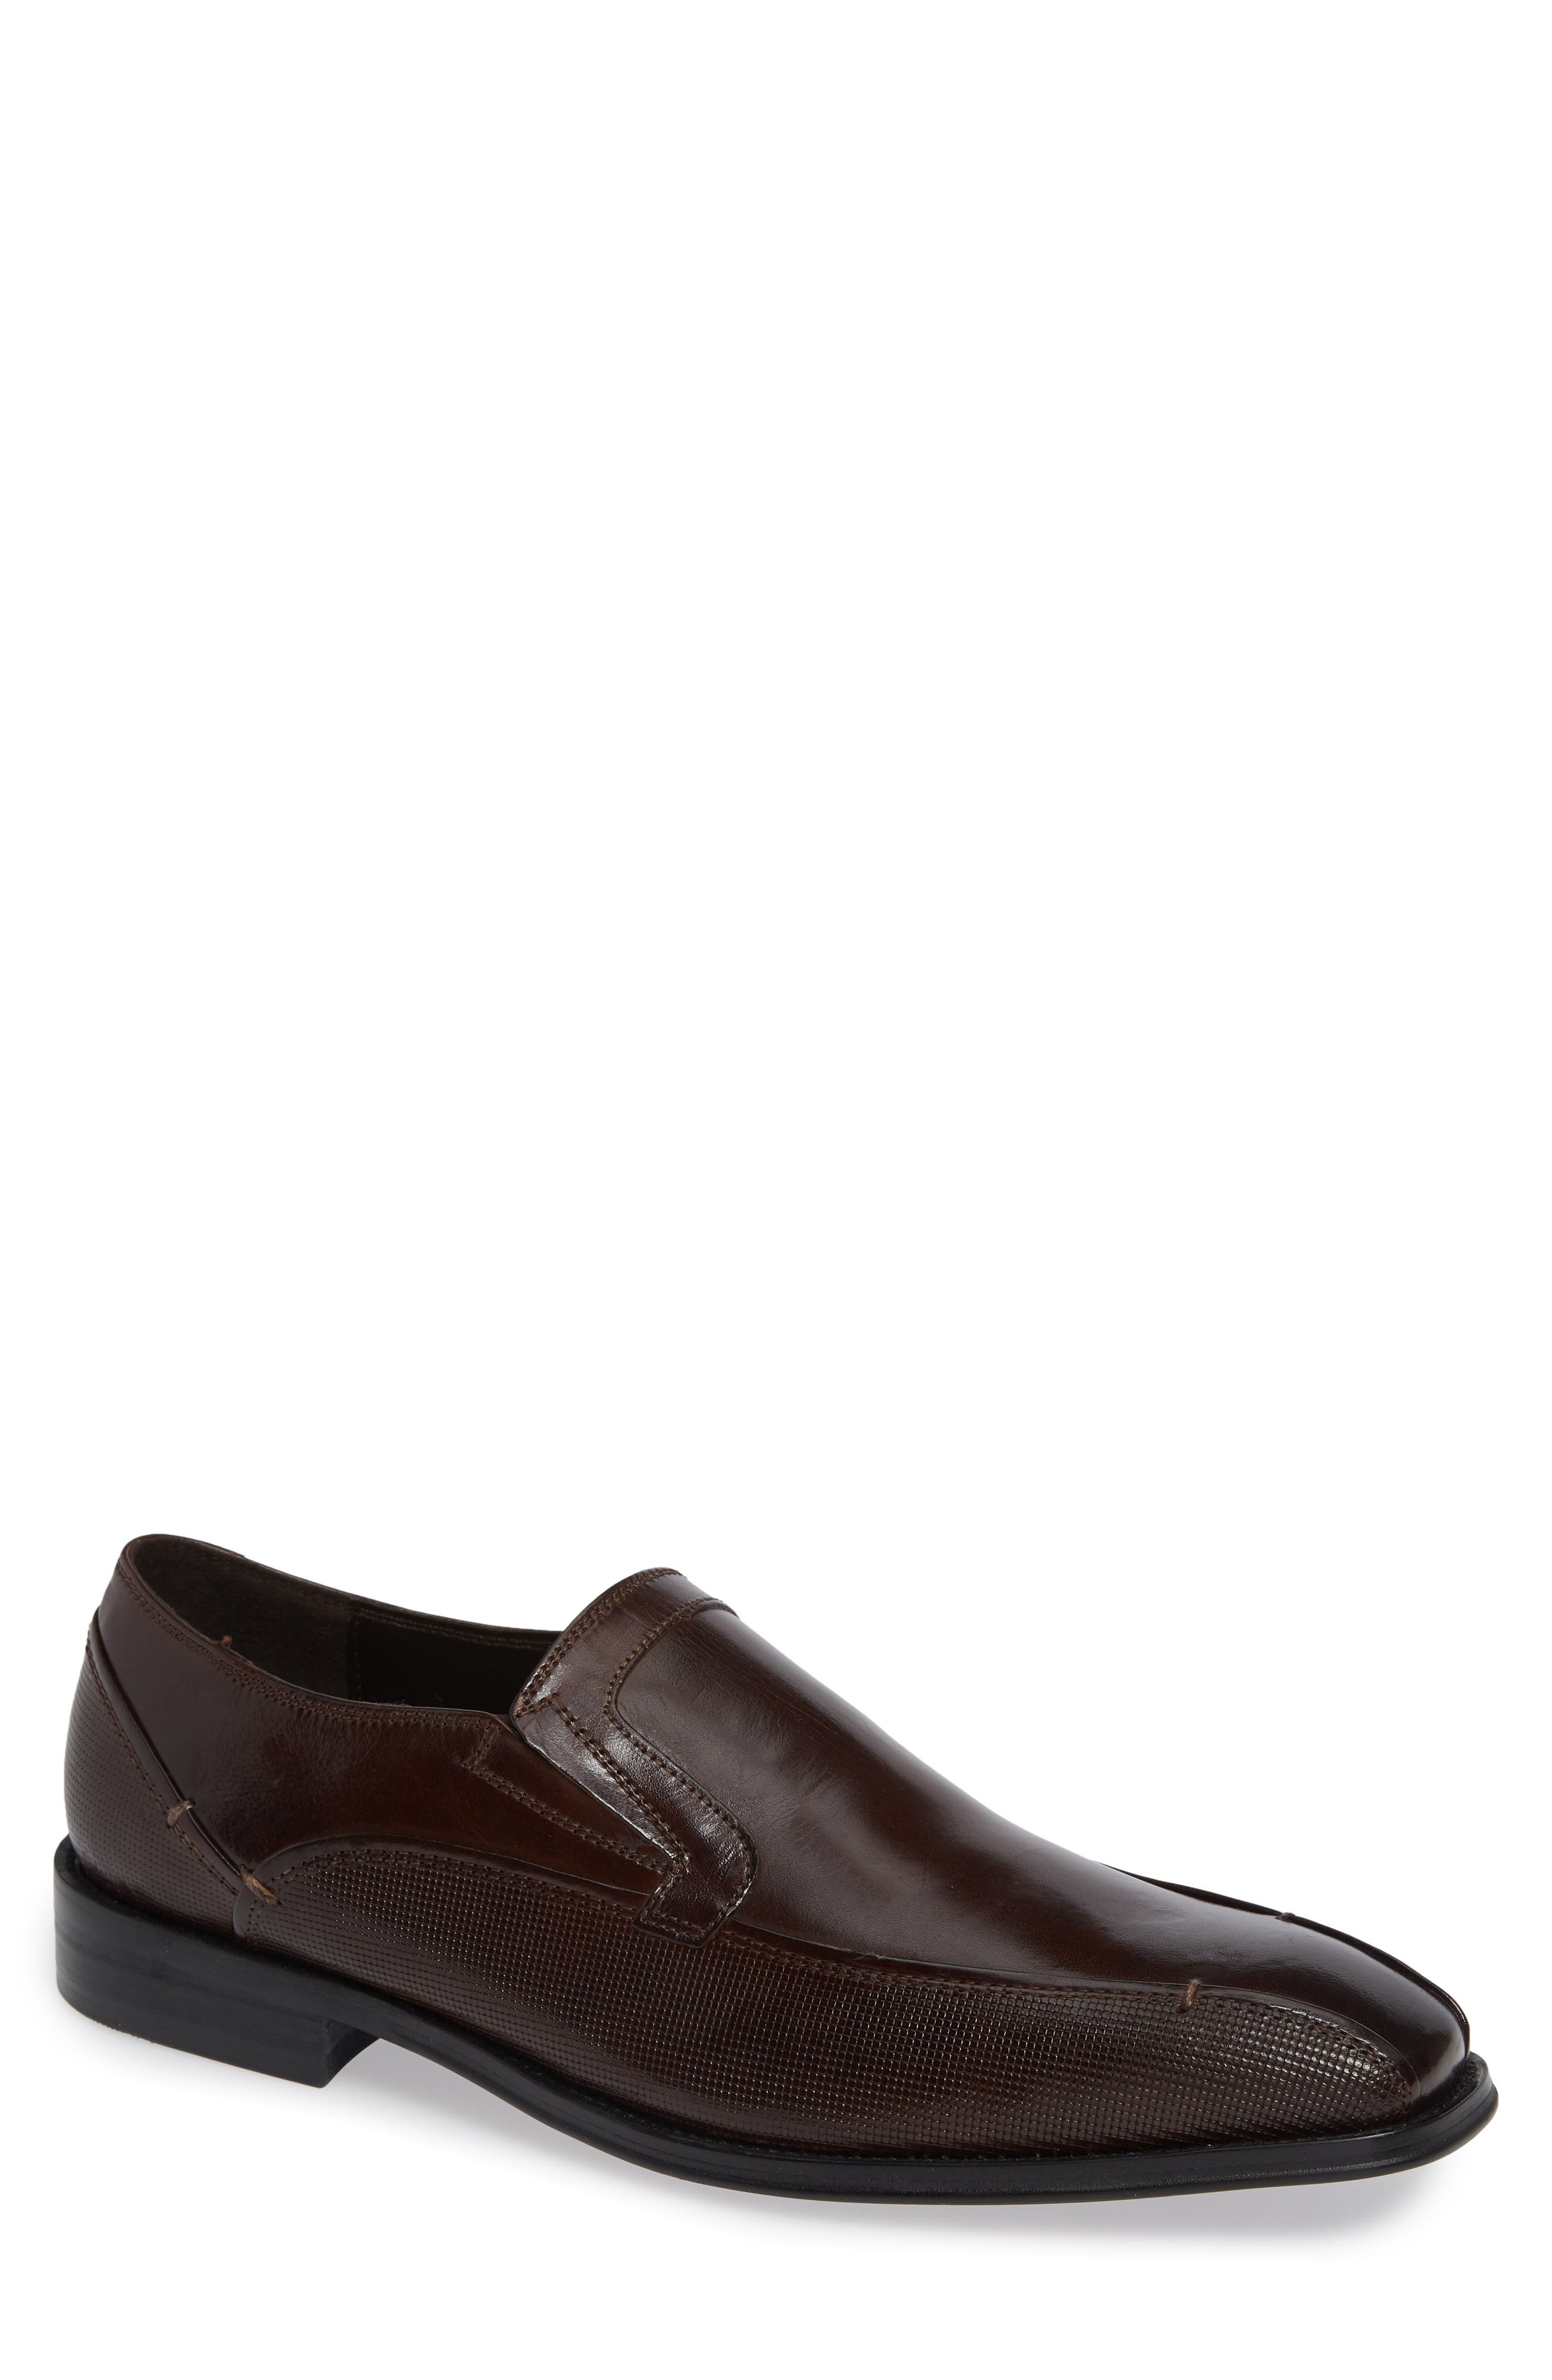 Witter Bike Toe Loafer,                             Main thumbnail 1, color,                             BROWN LEATHER